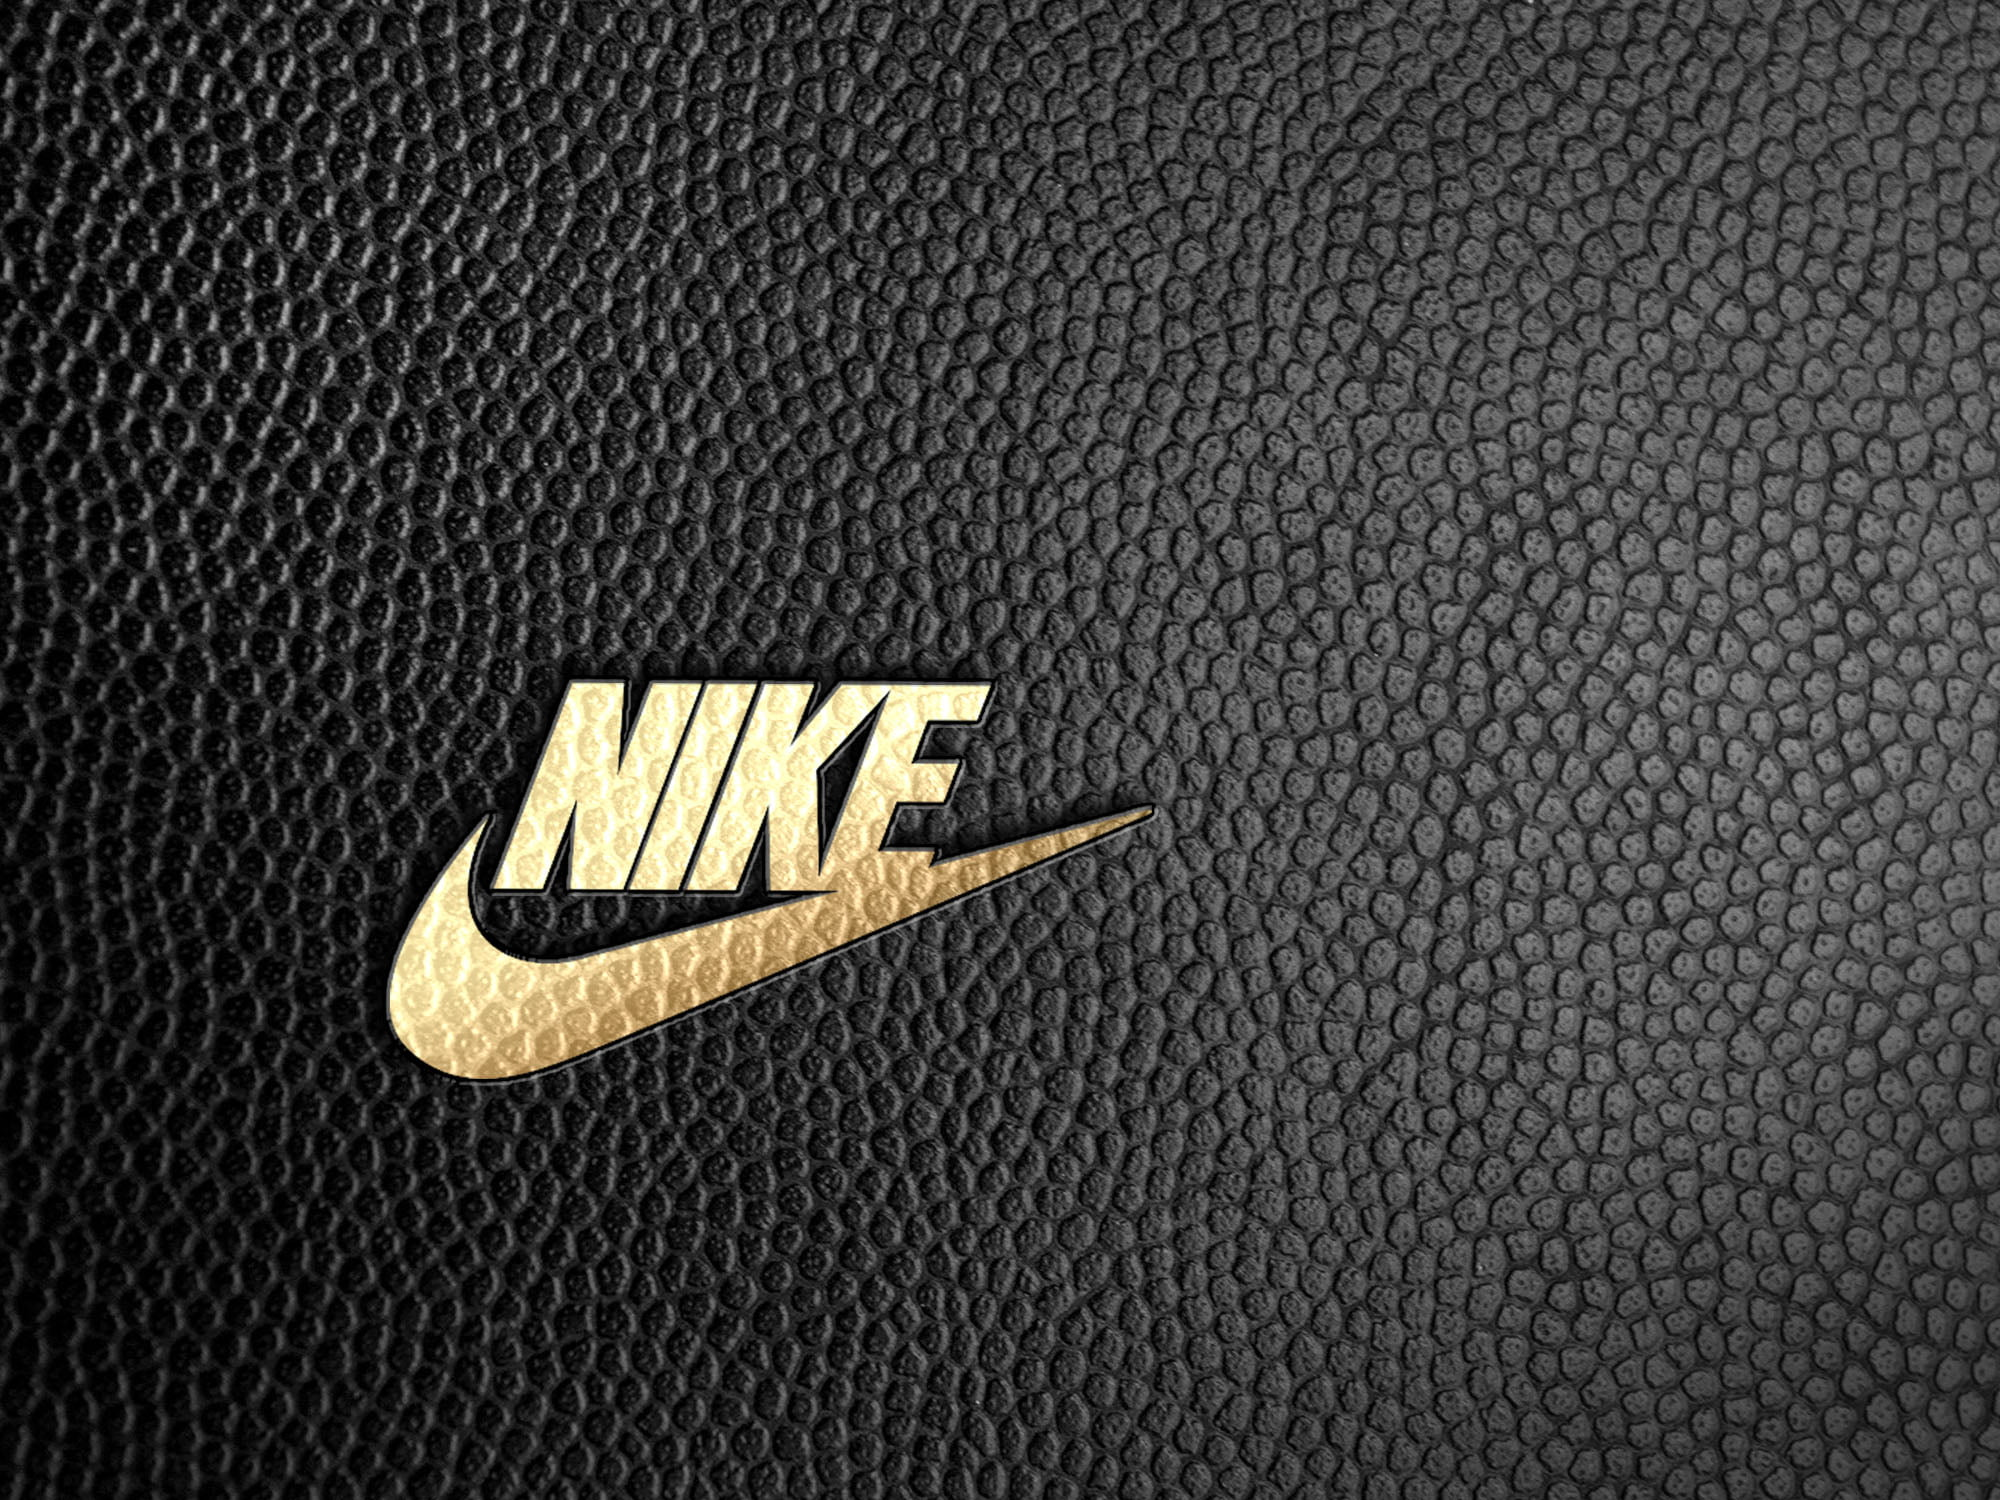 Nike logo on black leather